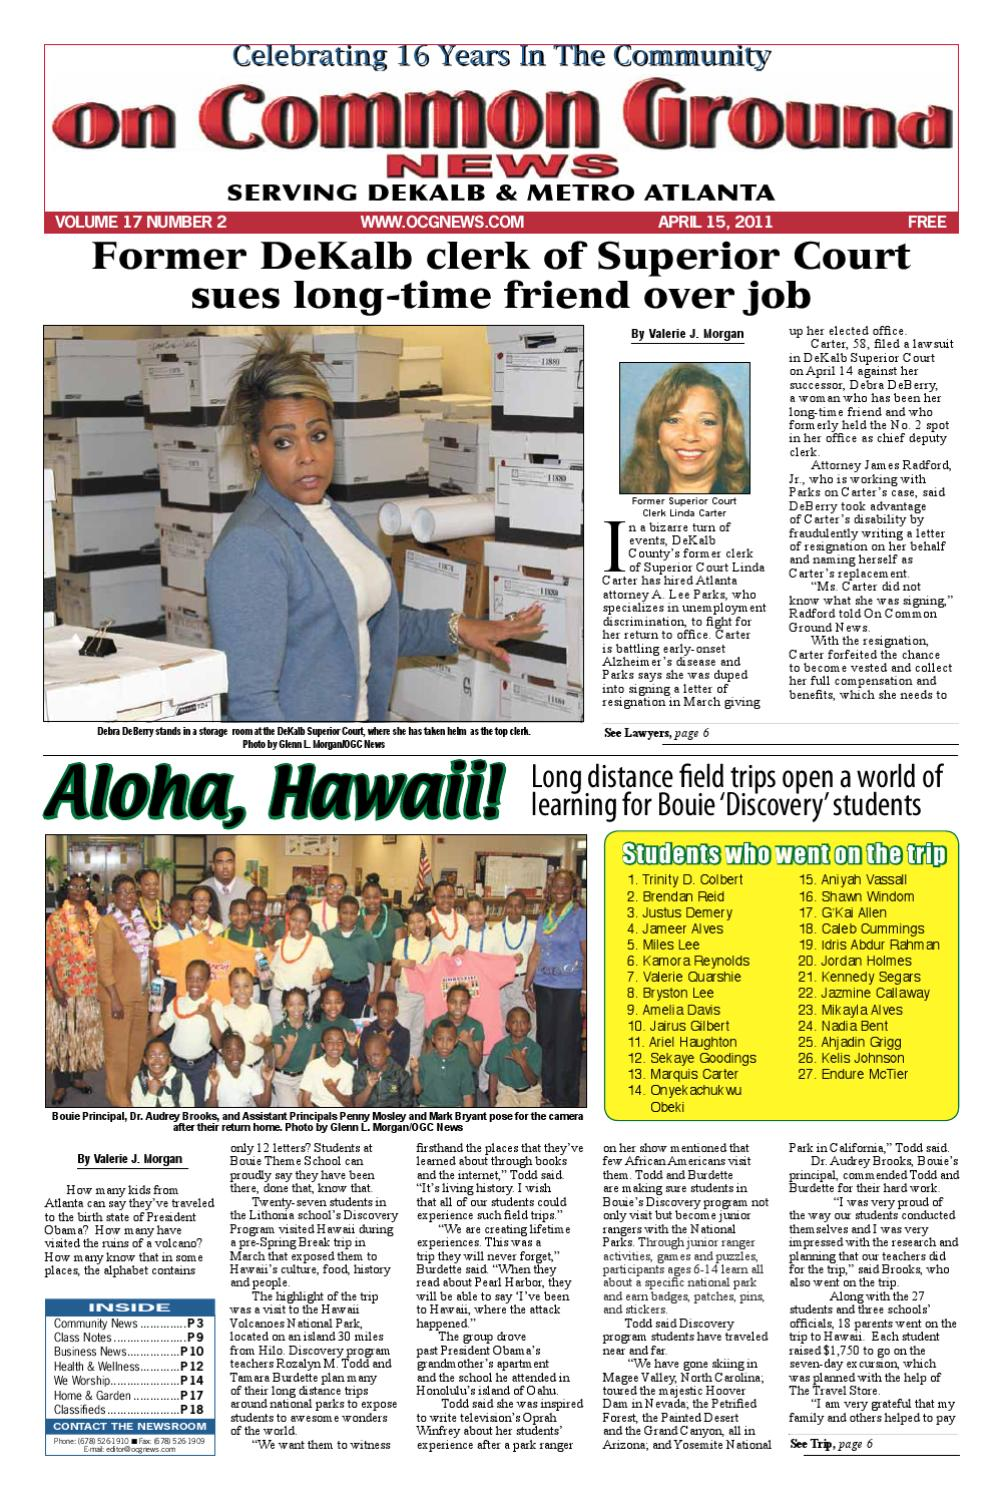 April 15 Issue By On Common Ground News Issuu